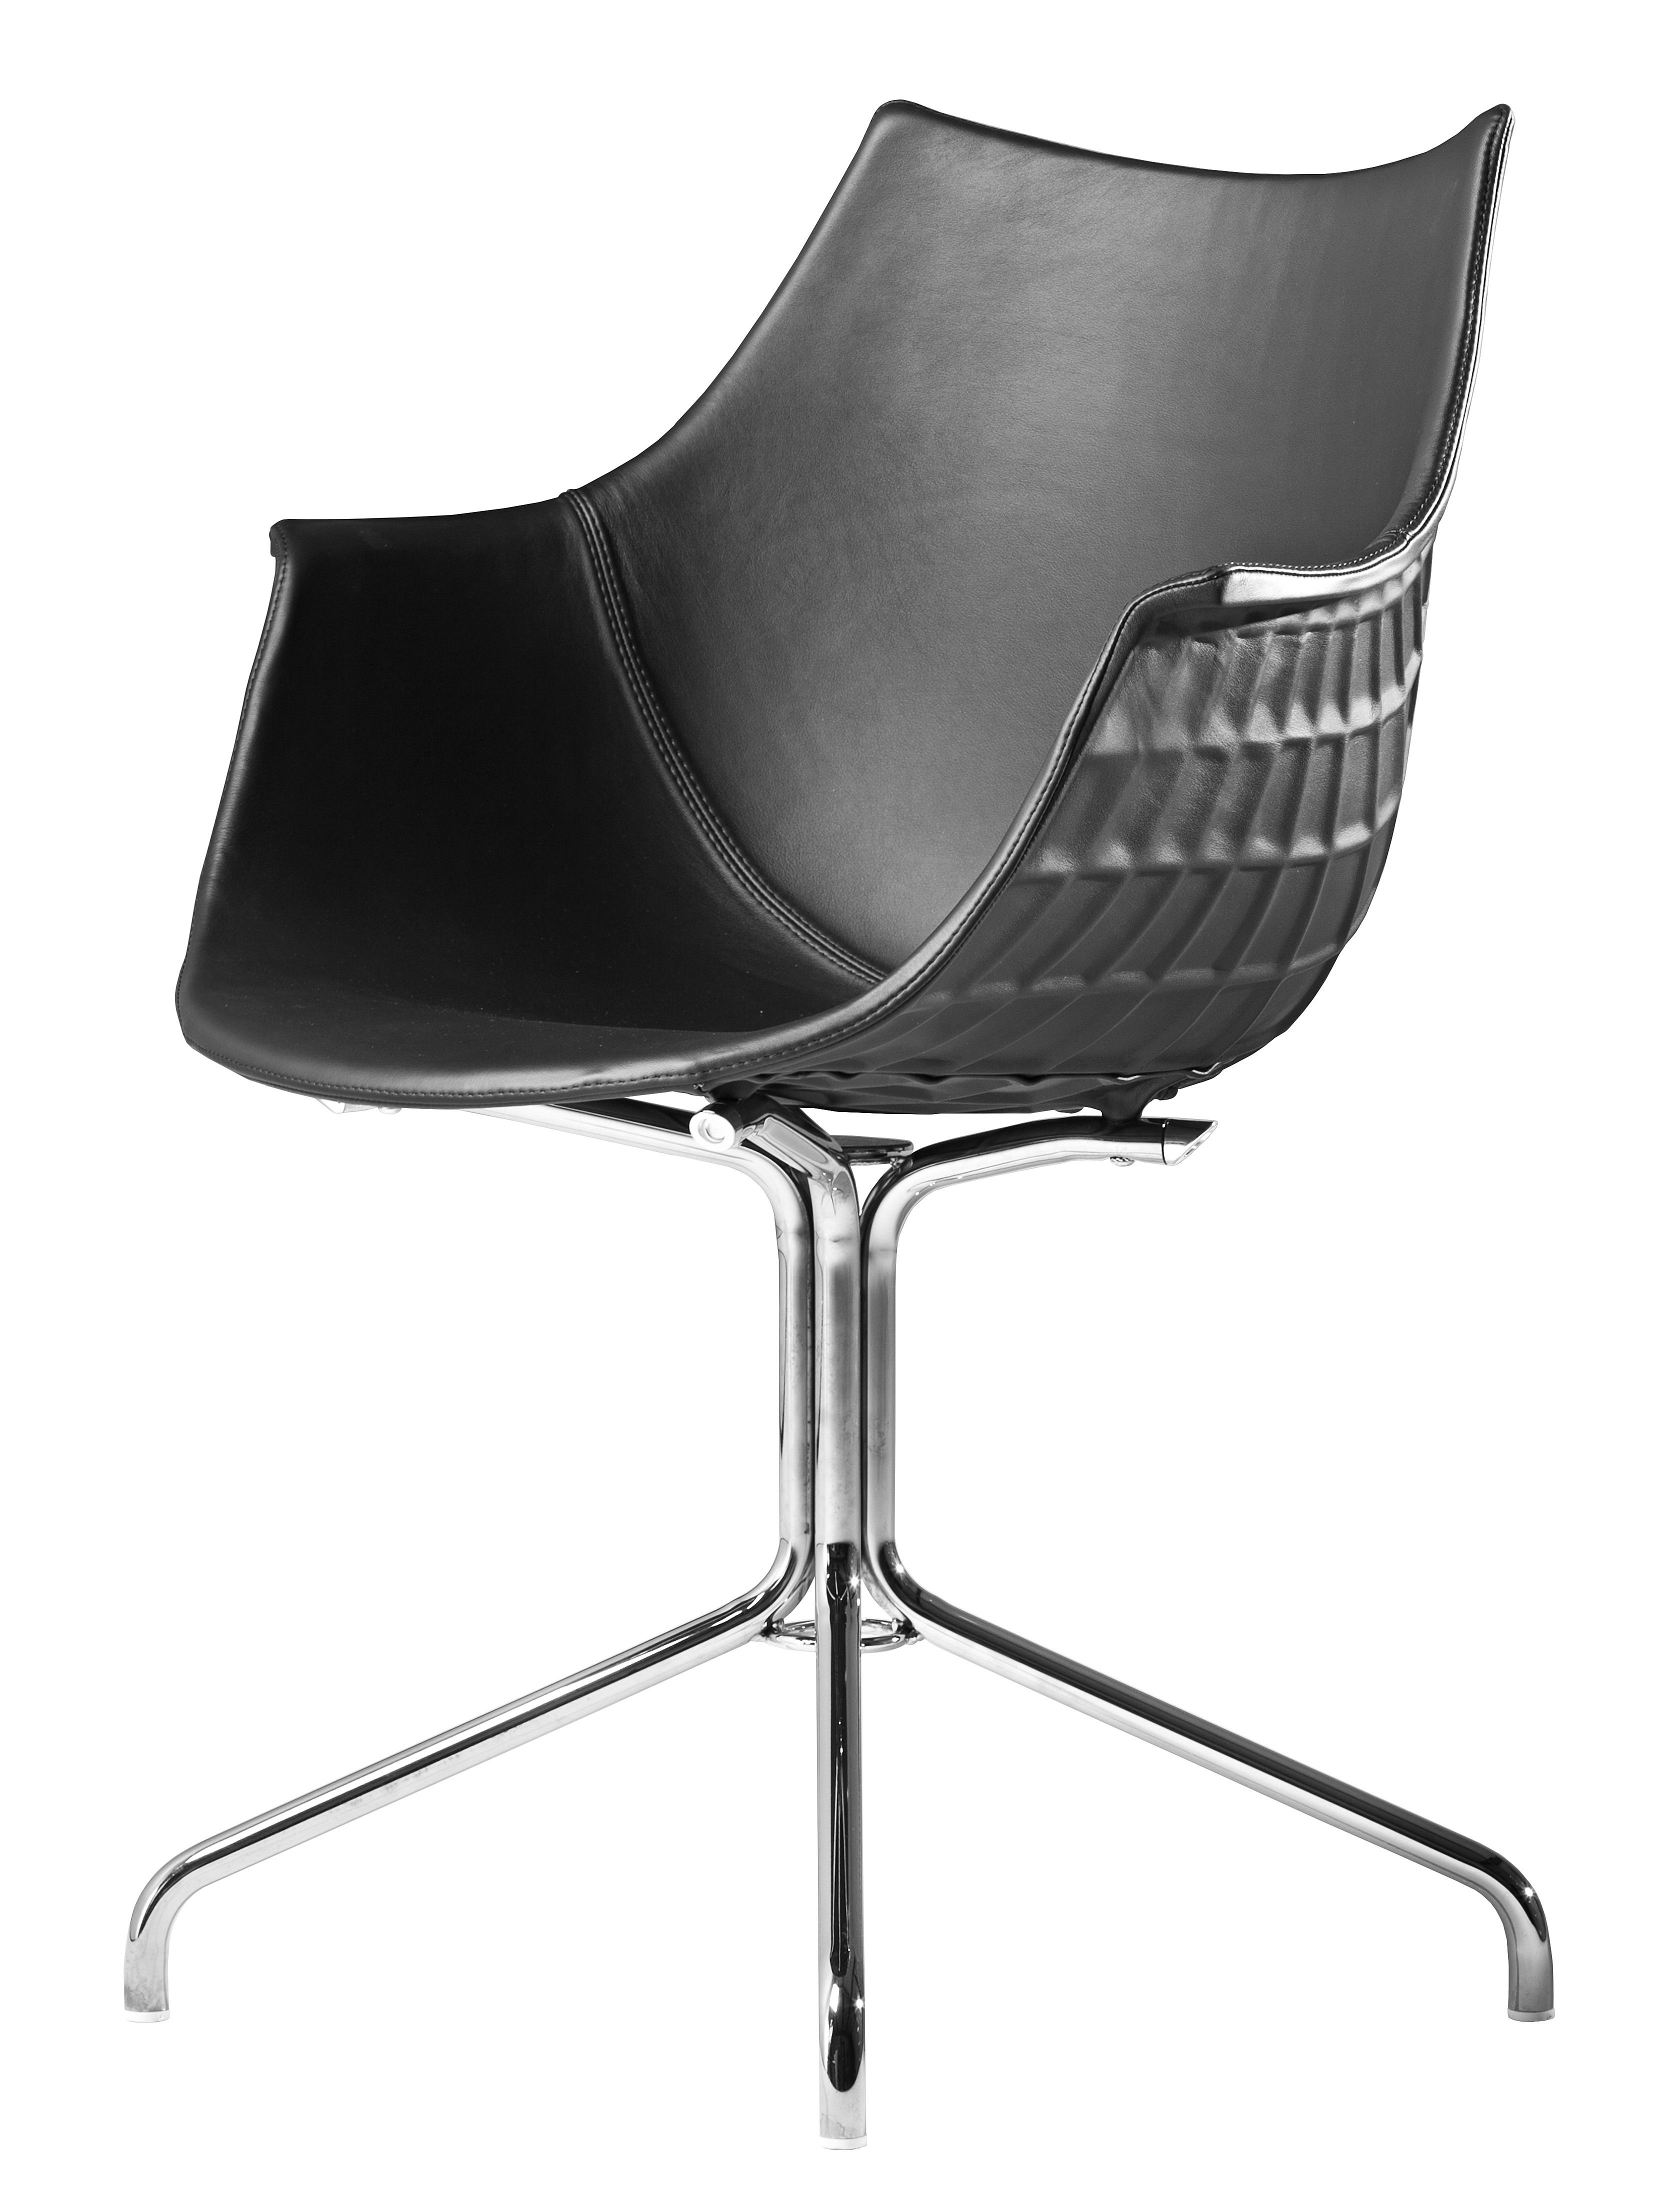 Furniture - Chairs - Méridiana Armchair - Leather by Driade - Black leather - Chromed steel, Leather, Polycarbonate